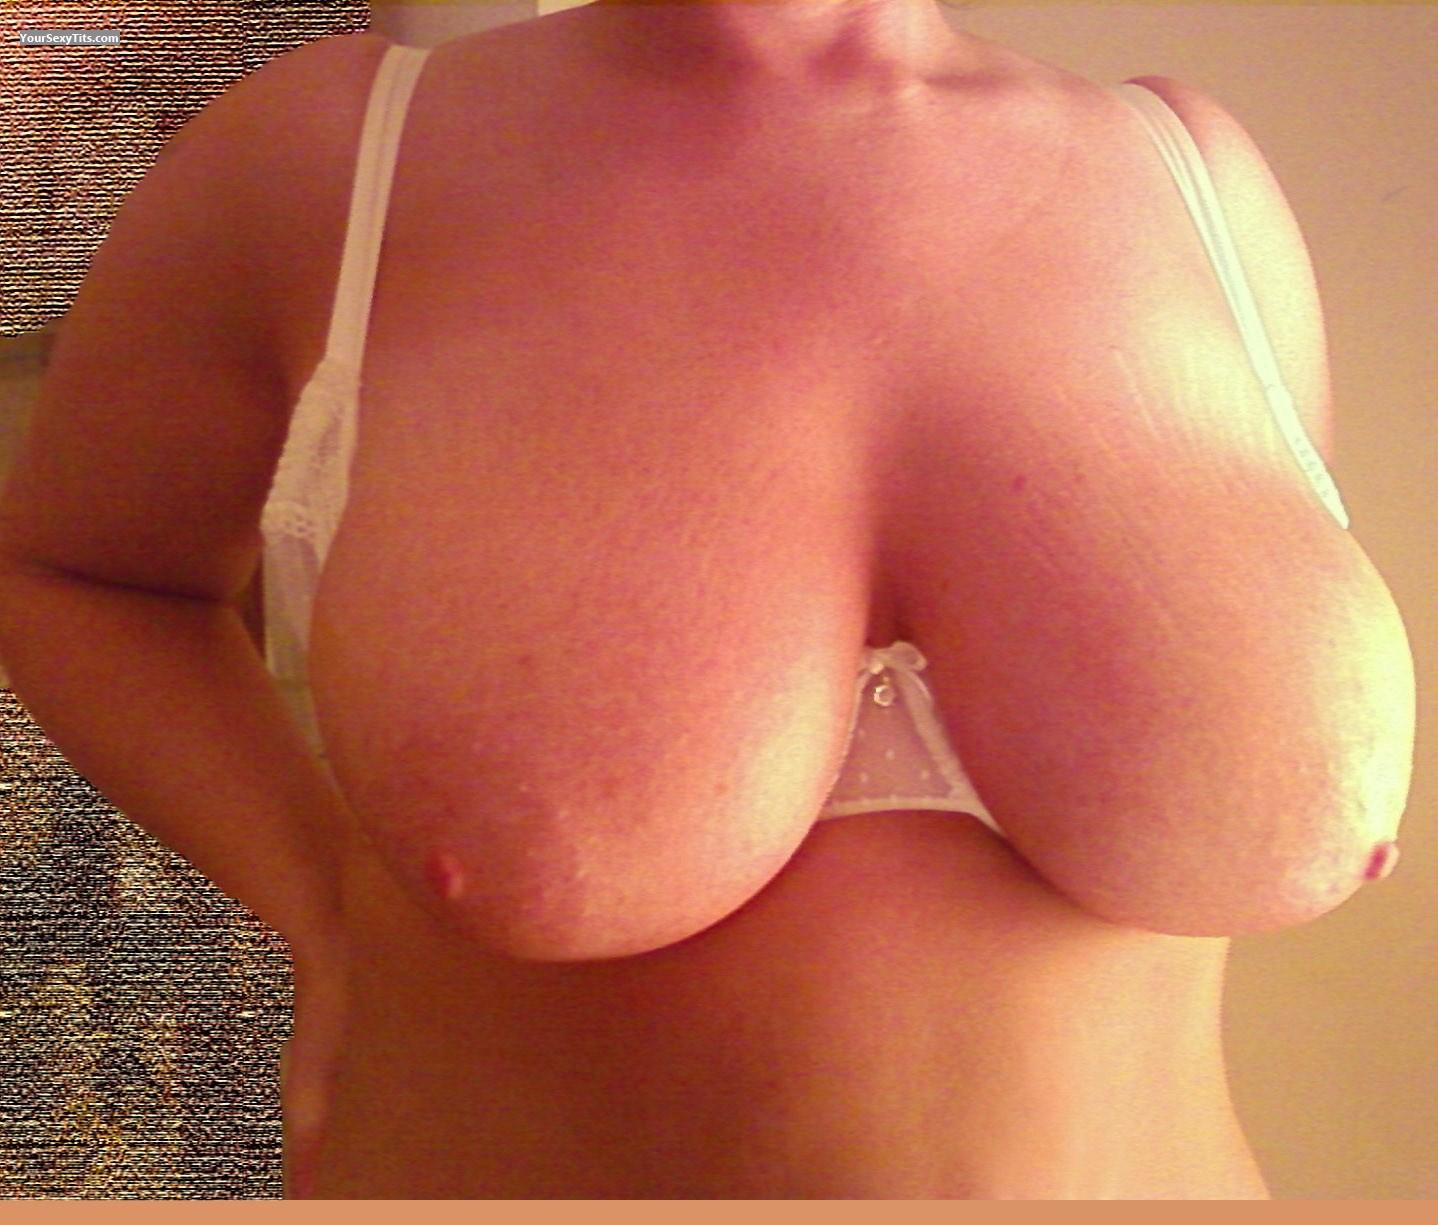 Tit Flash: Very Big Tits - FLUFFY from United States